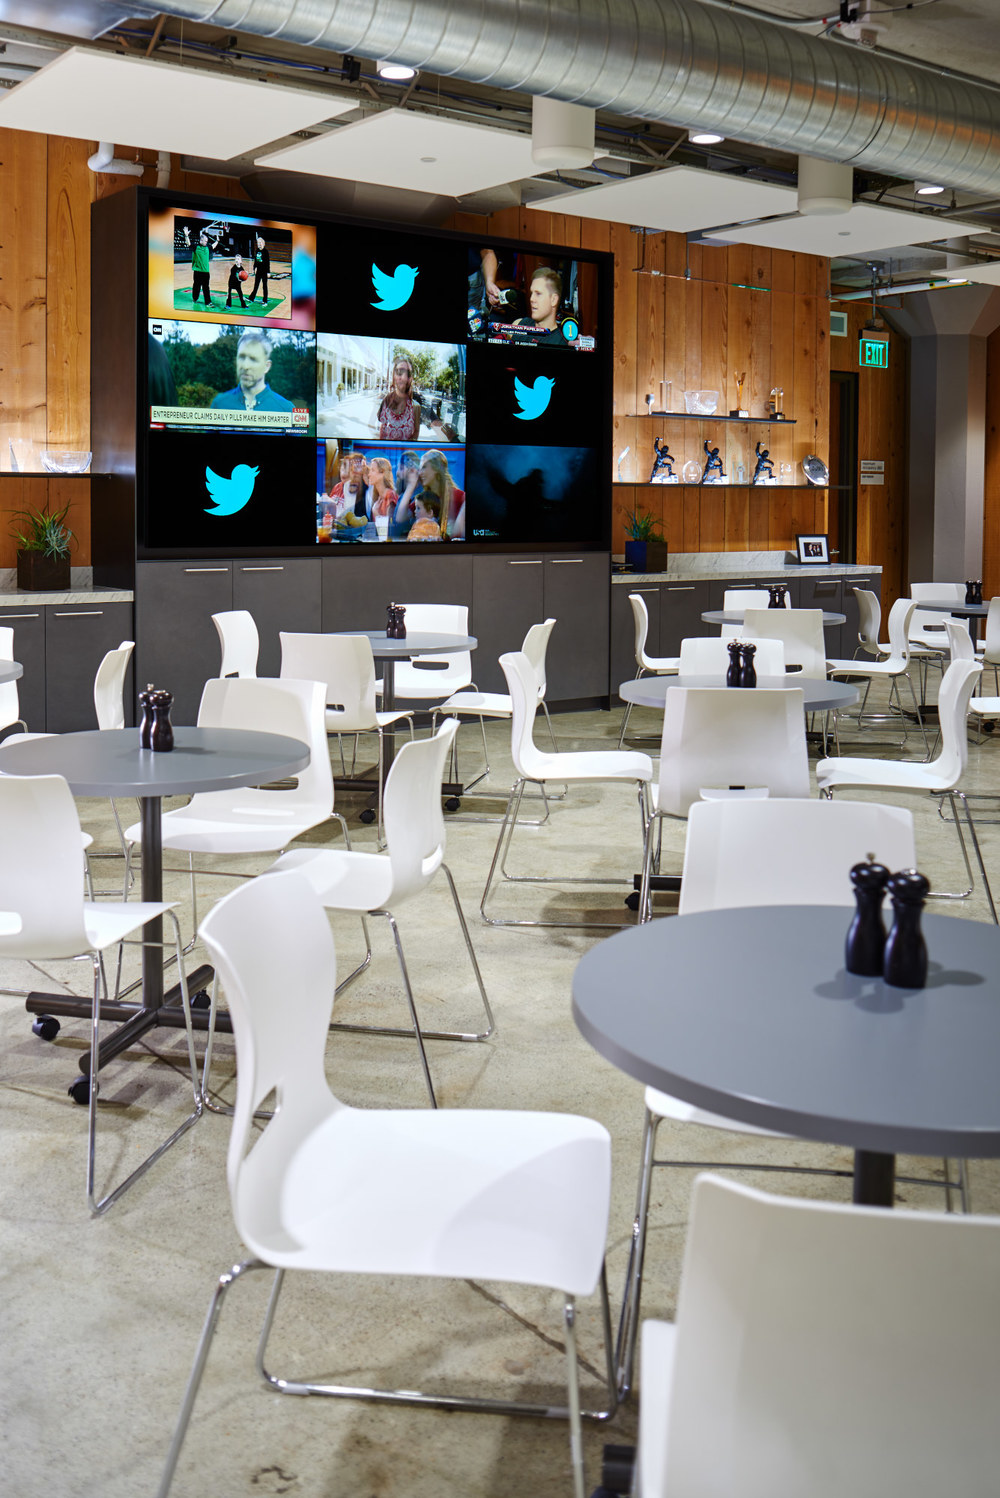 Copyright 2015 Dean J. Birinyi, ASMP Nine screen video wall in the break room in the San Francisco office of Twitter created for Crestron Electronics